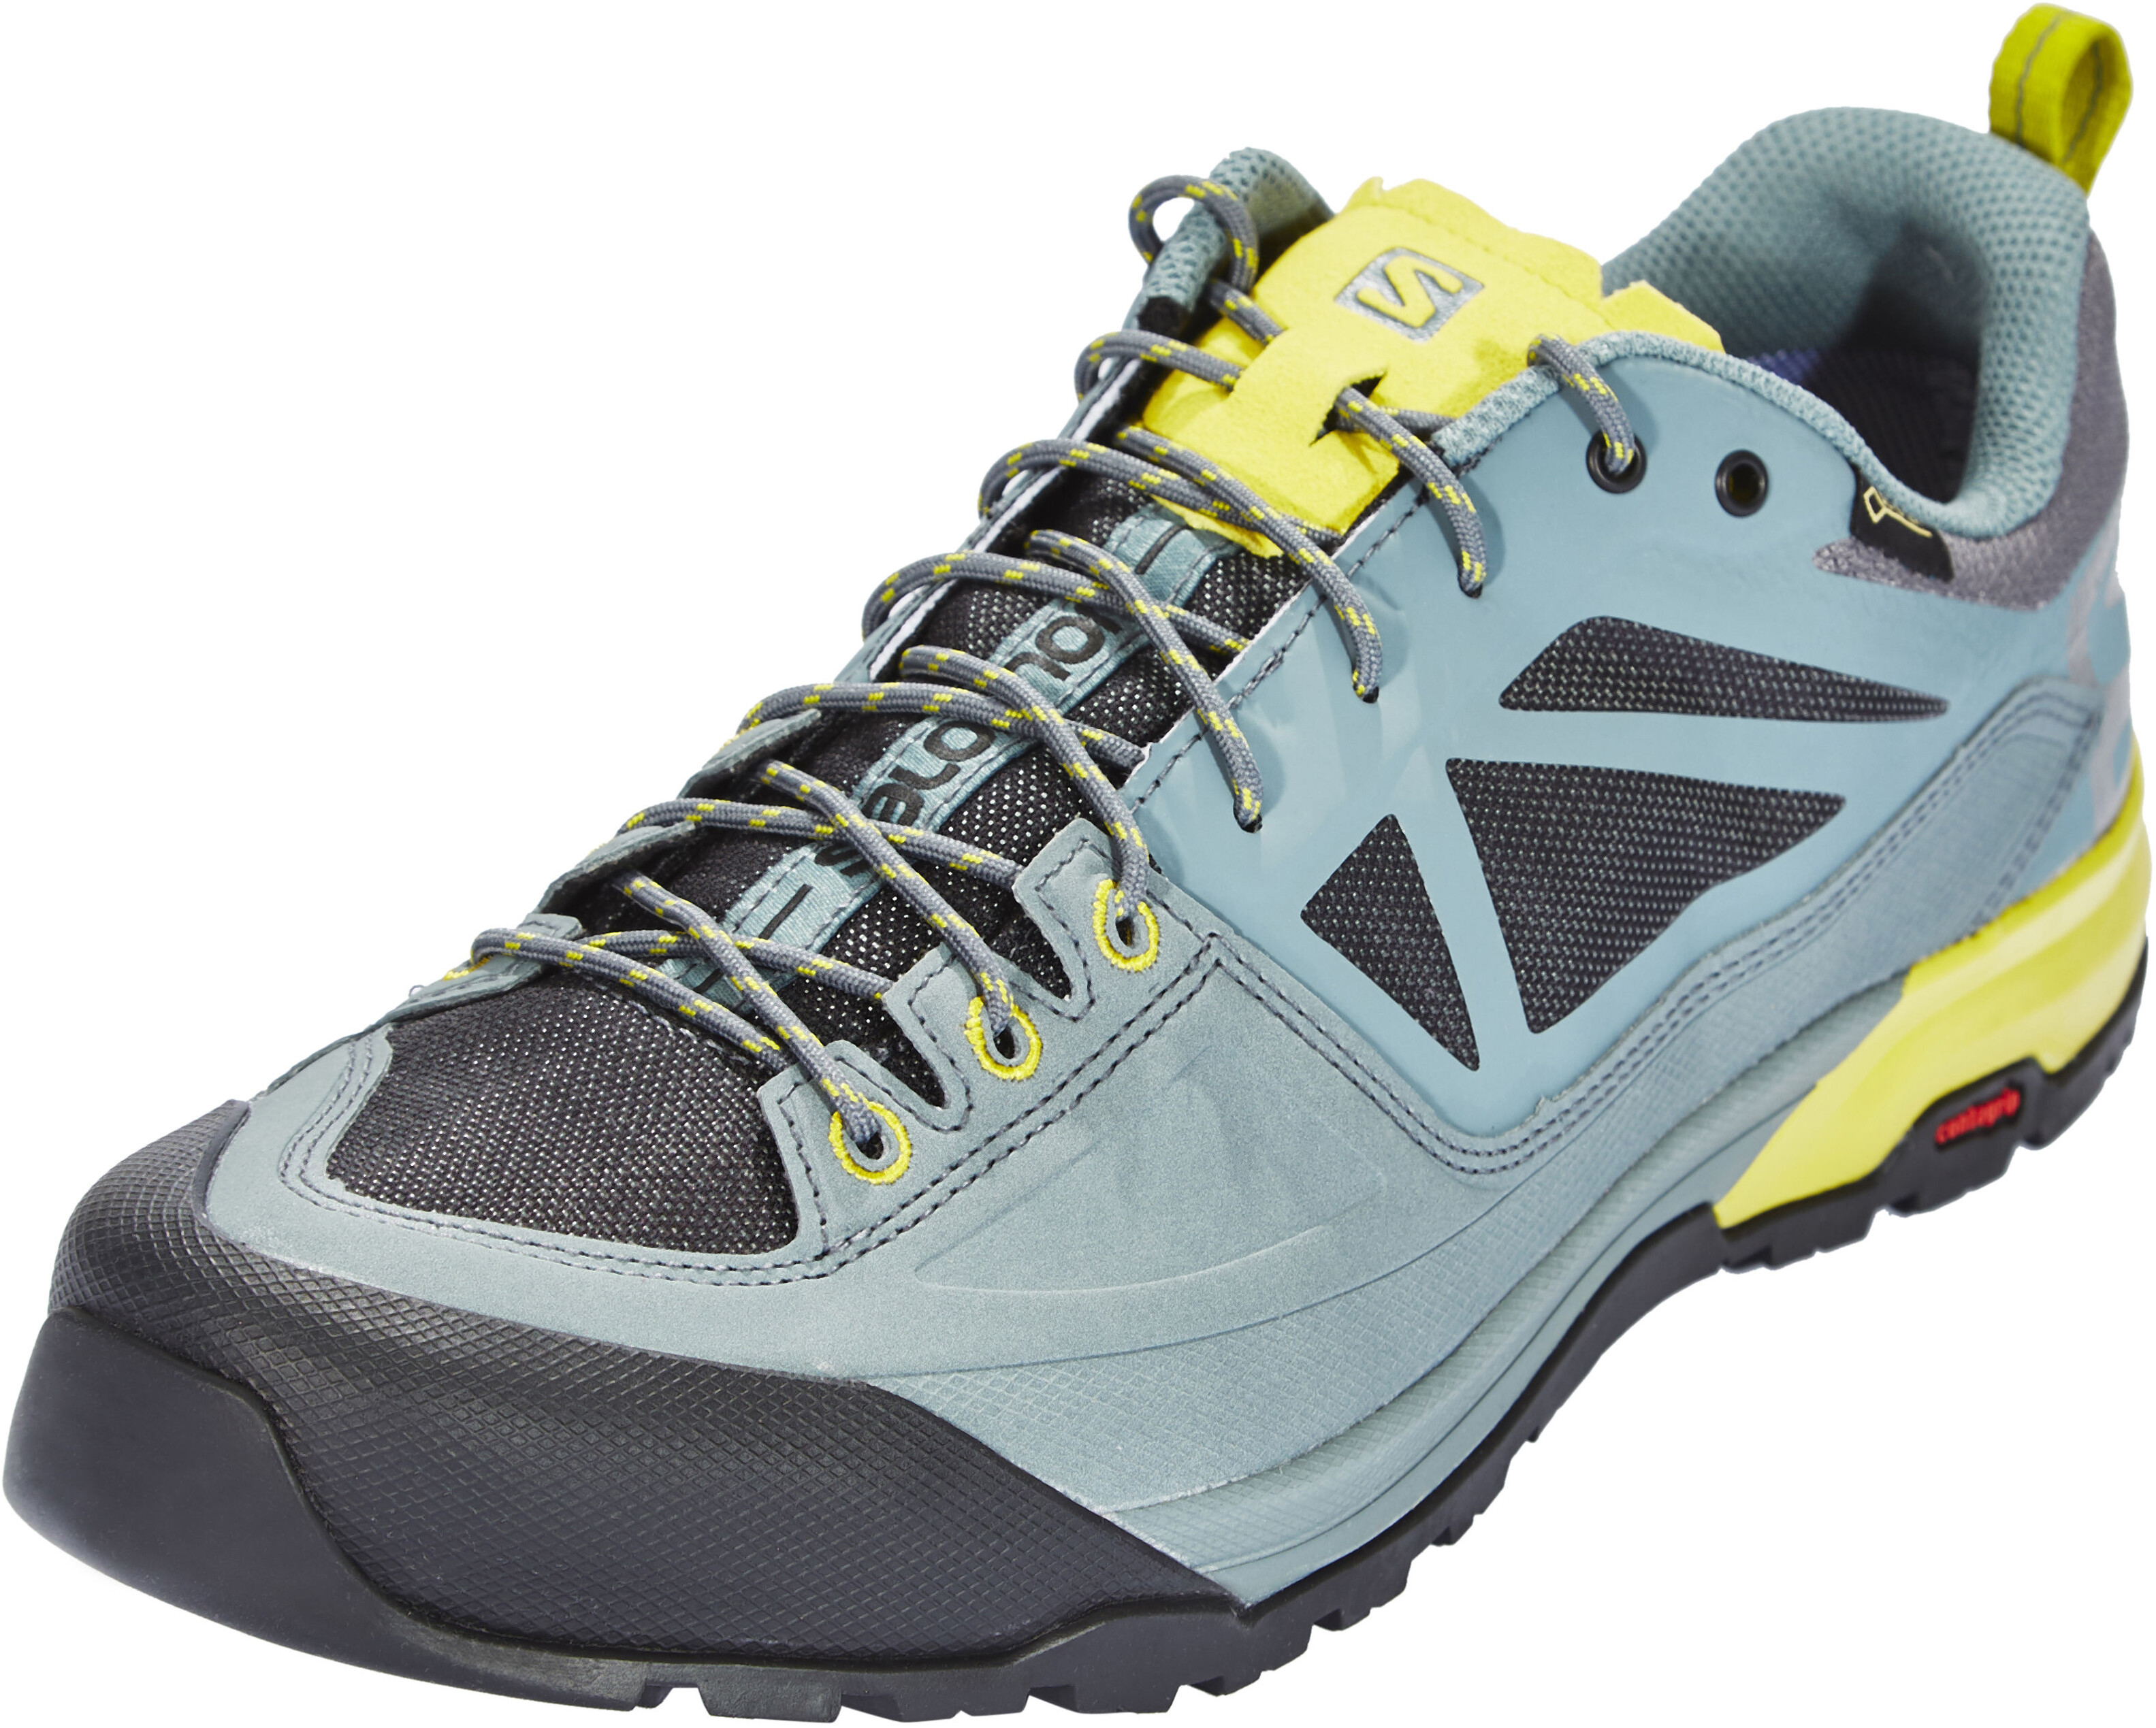 Salomon X Alp SPRY GTX Shoes Men blue at Addnature.co.uk 5cdced87a67